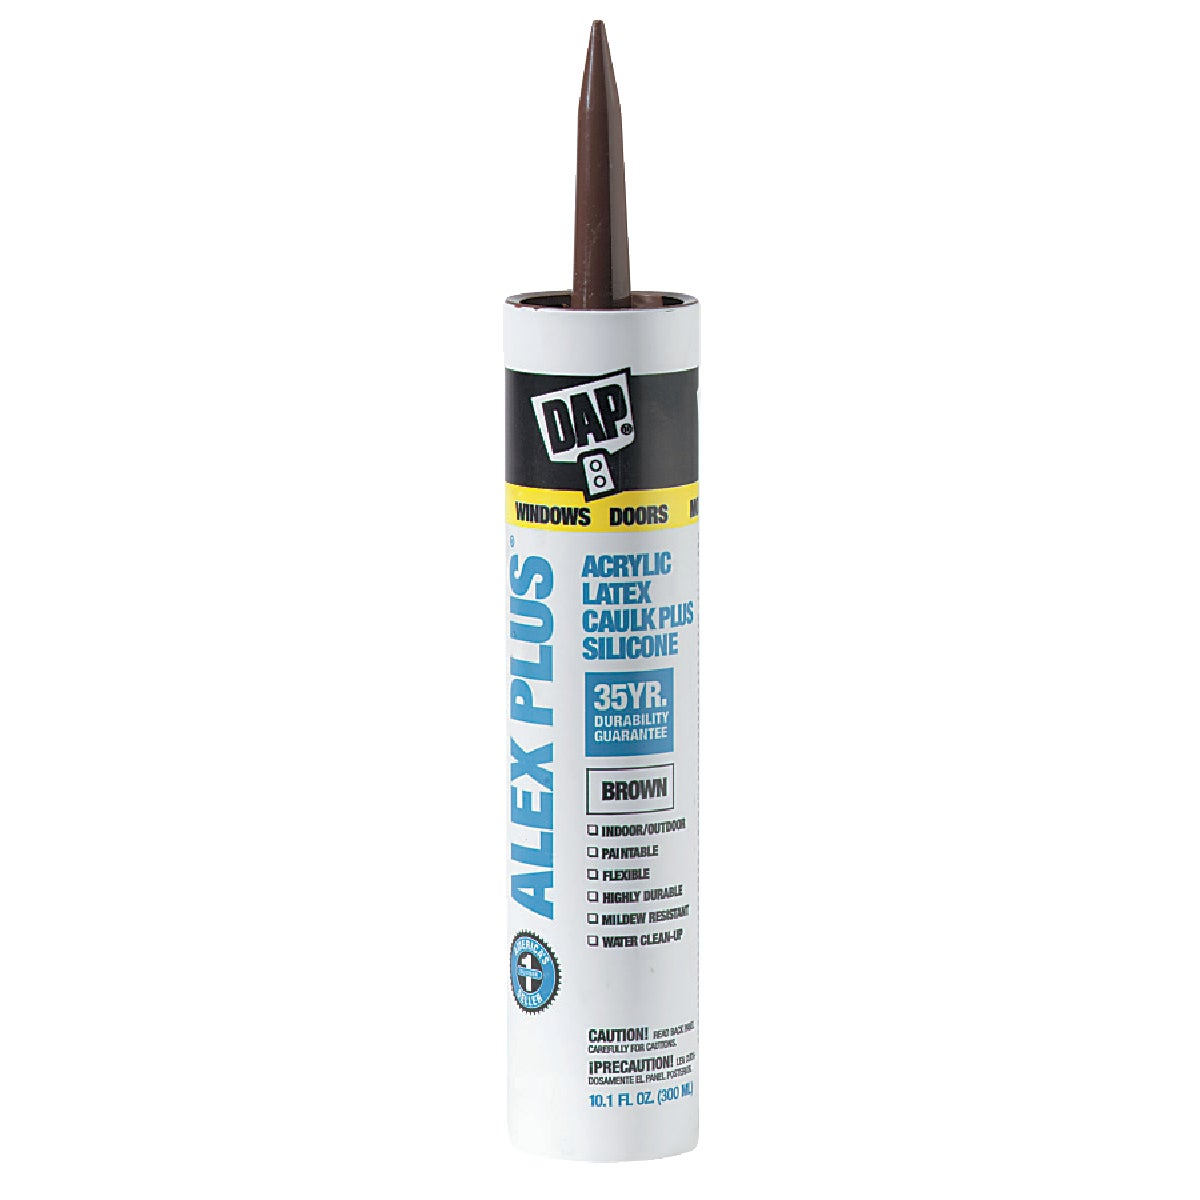 BROWN ALEX PLUS CAULK - 18120 by Dap Inc